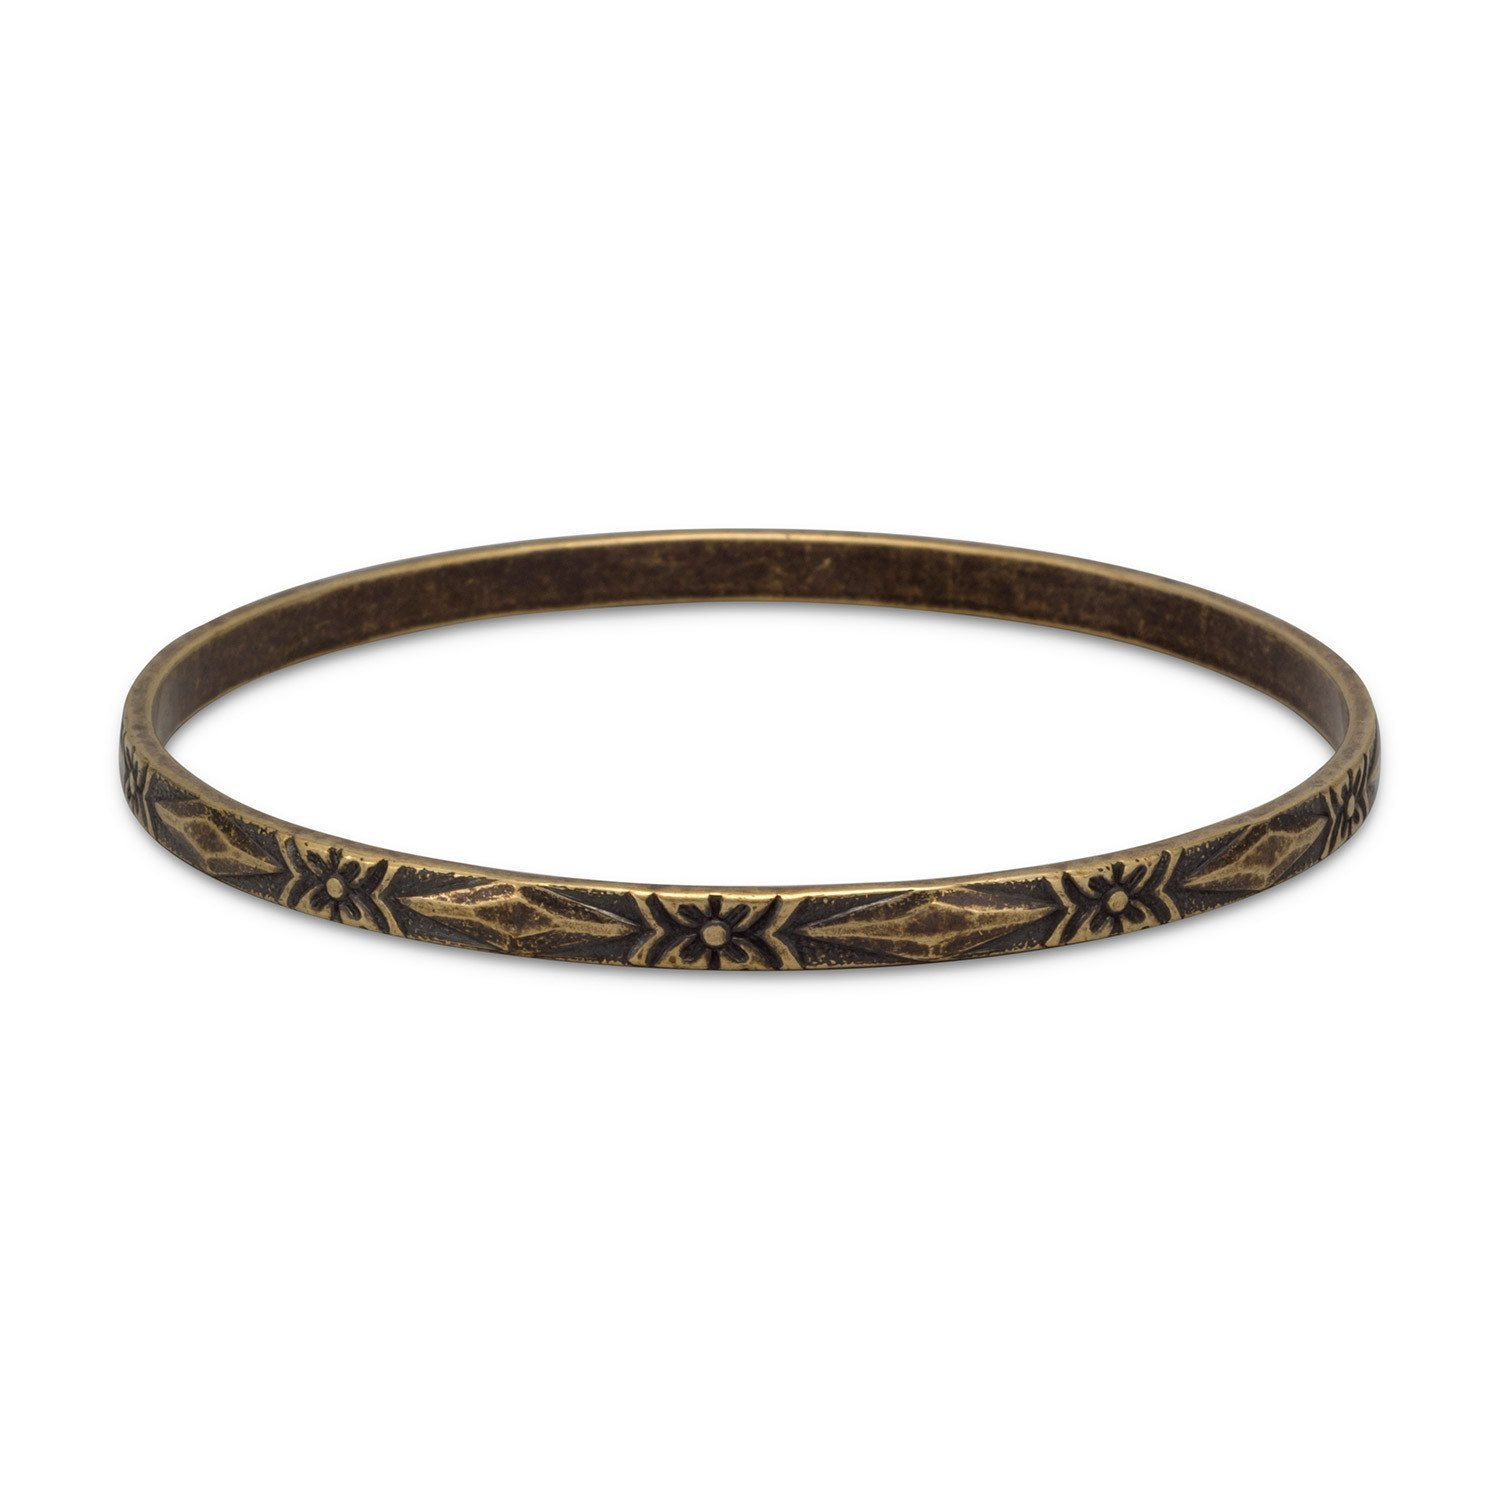 Oxidized brass bangle with floral design products